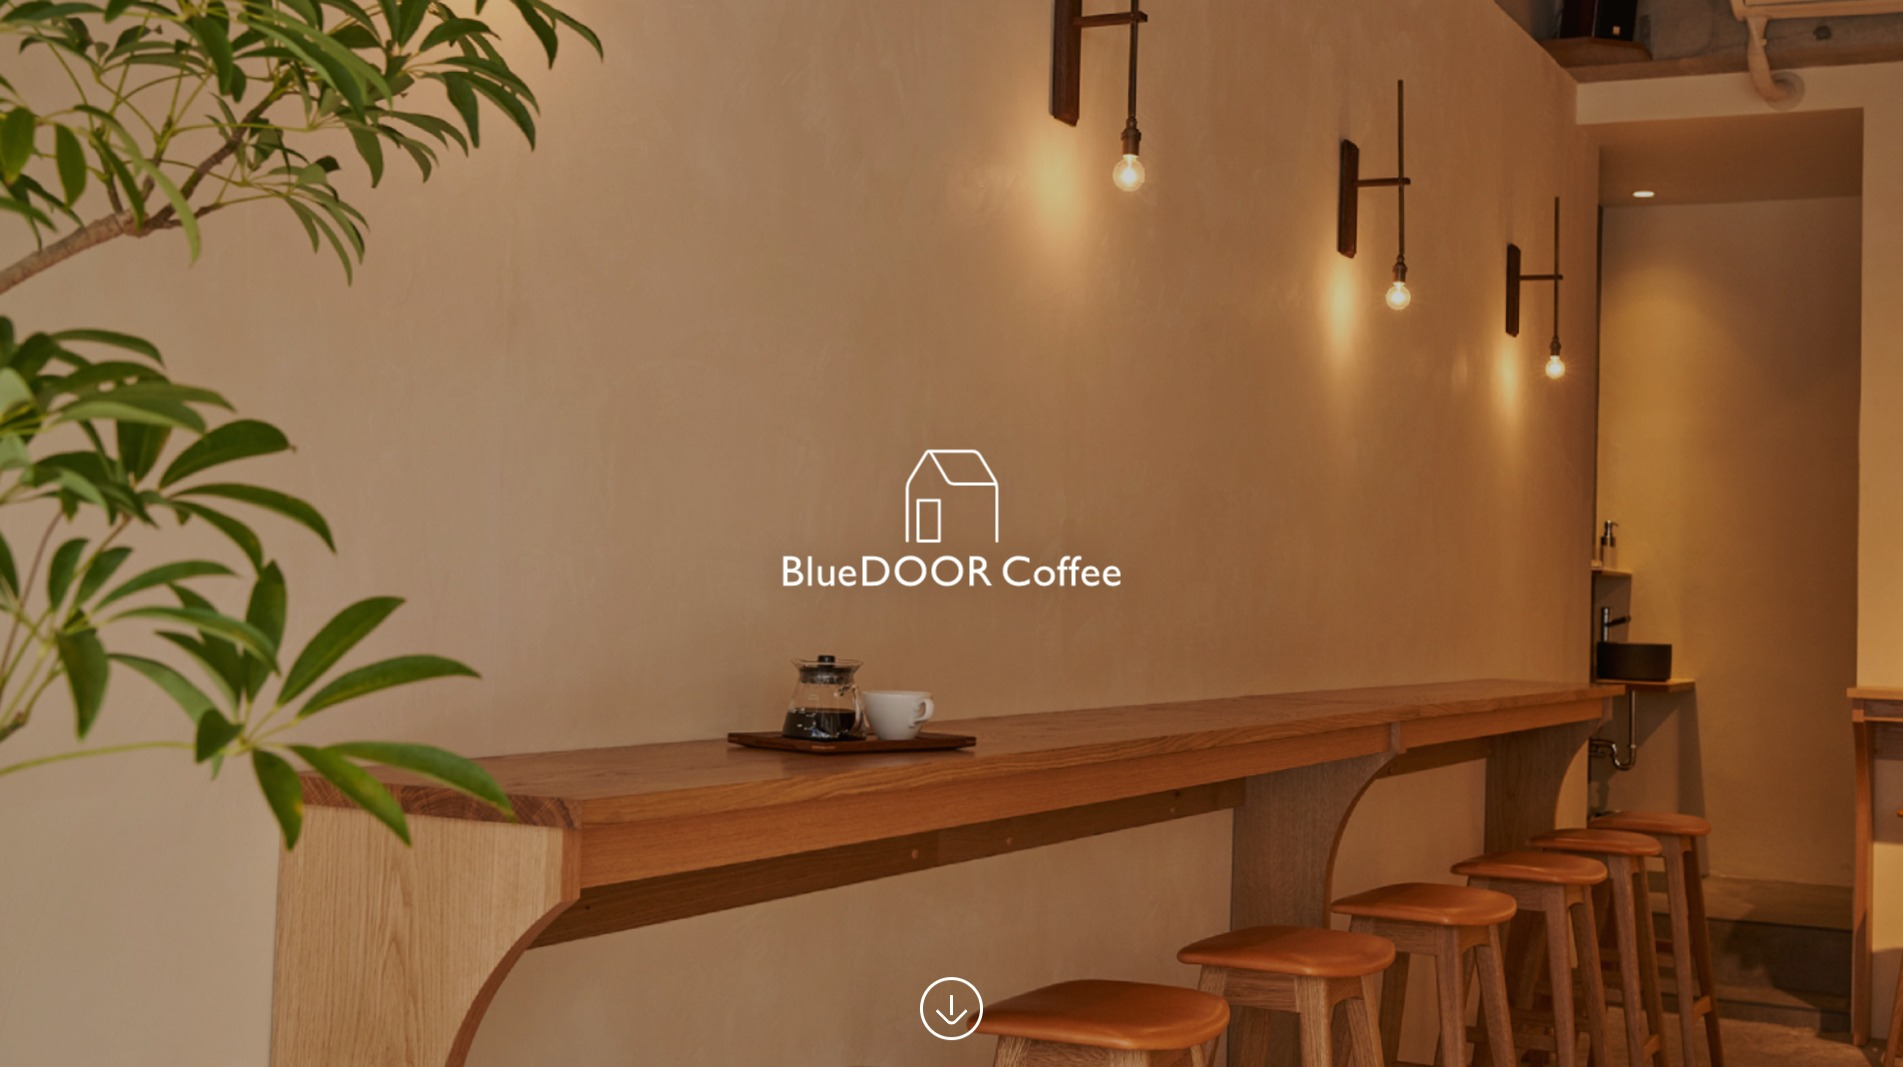 BlueDOOR Coffee